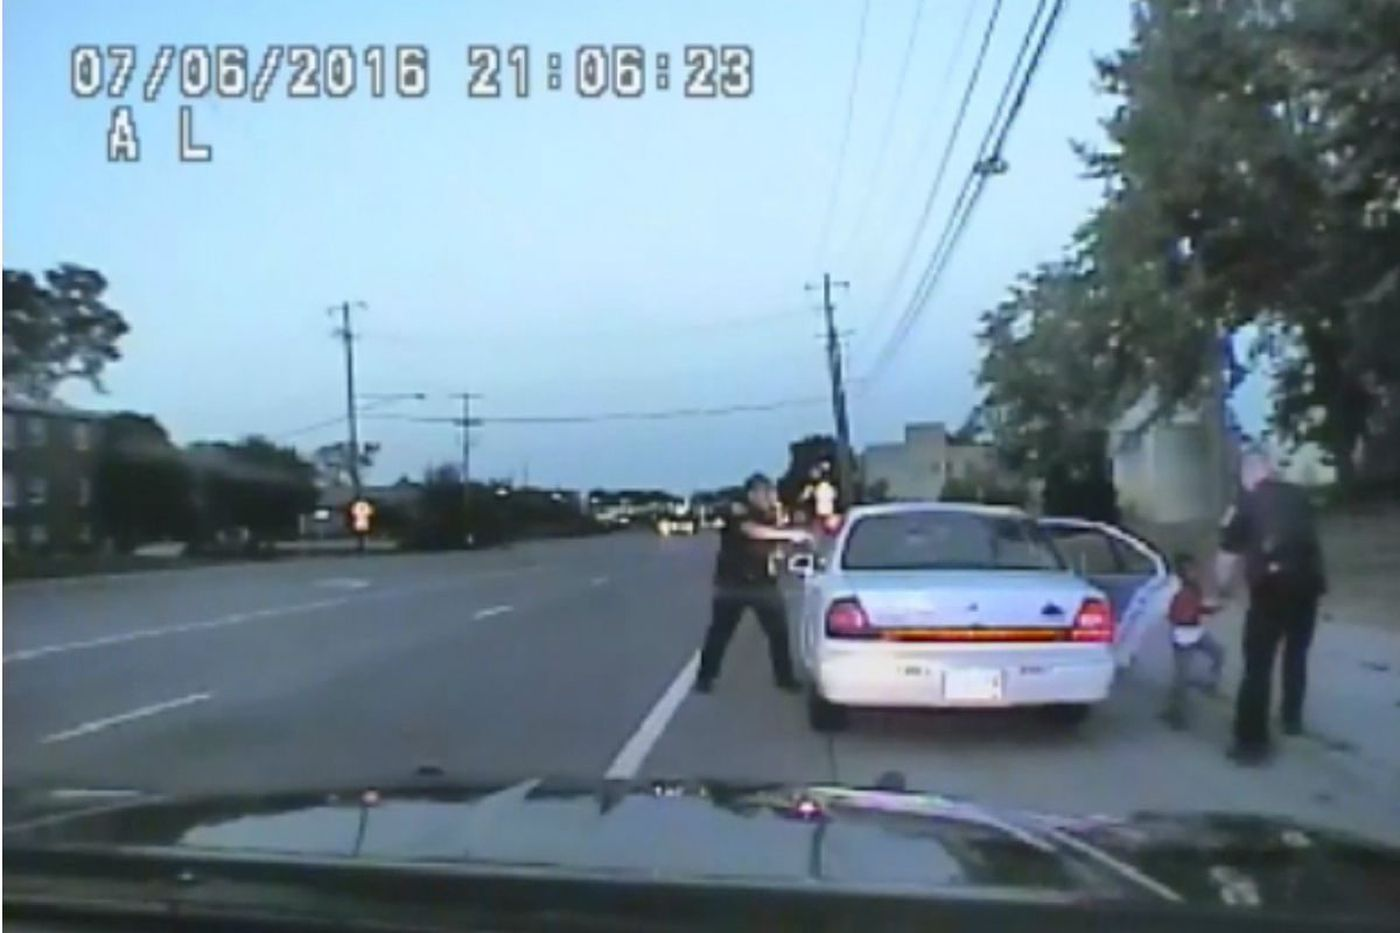 7 seconds. That's how long it took to kill a compliant black man carrying a legal gun